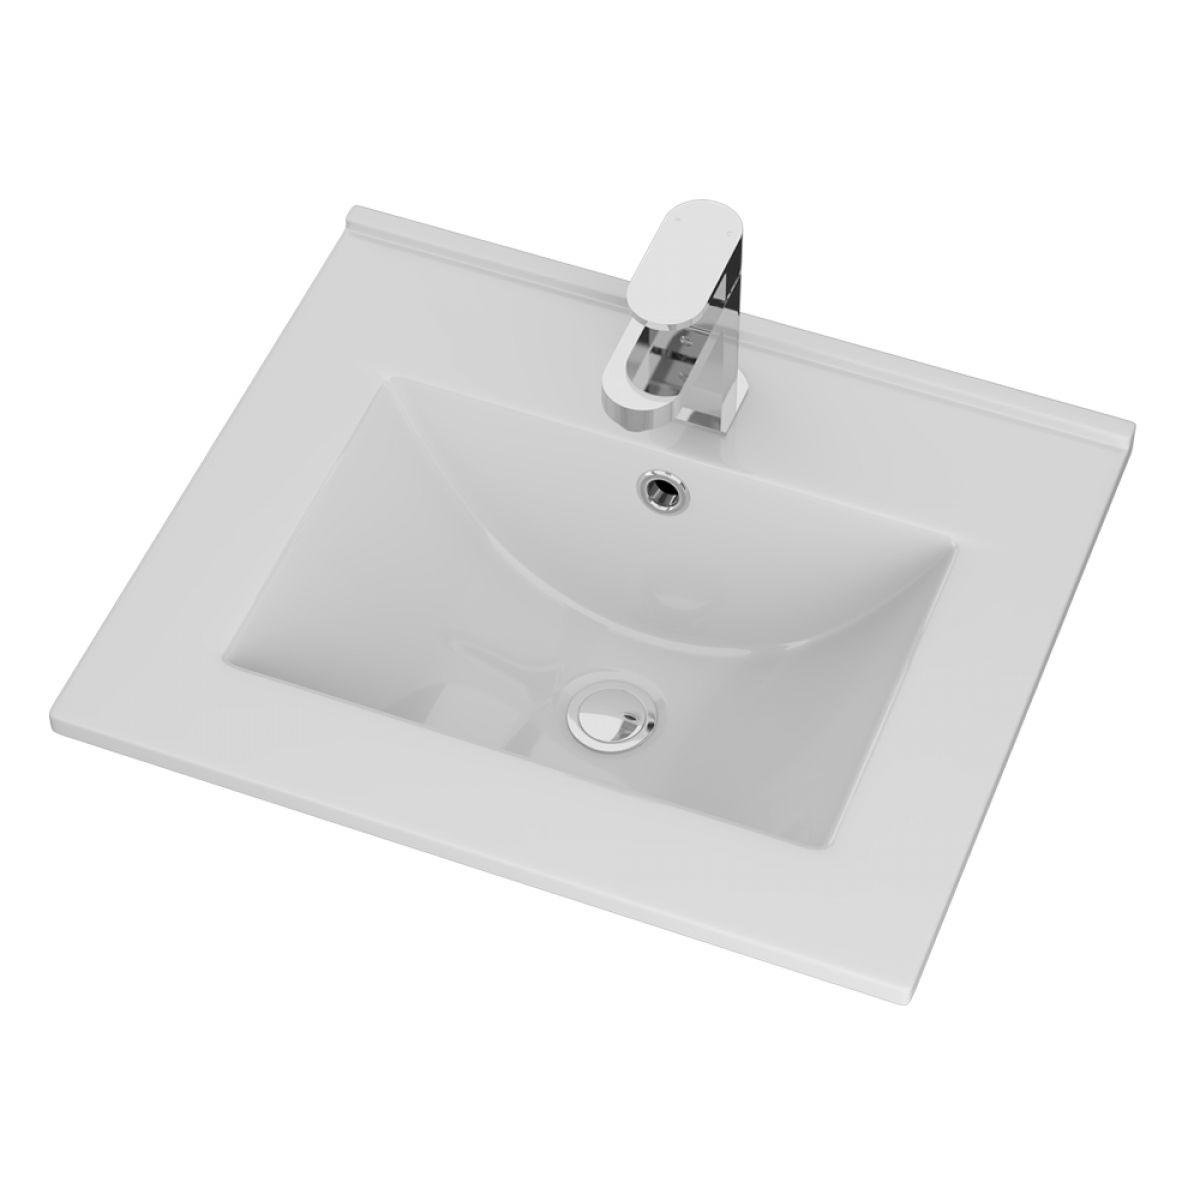 Cassellie Idon Ceramic Thin Edge Basin 500mm